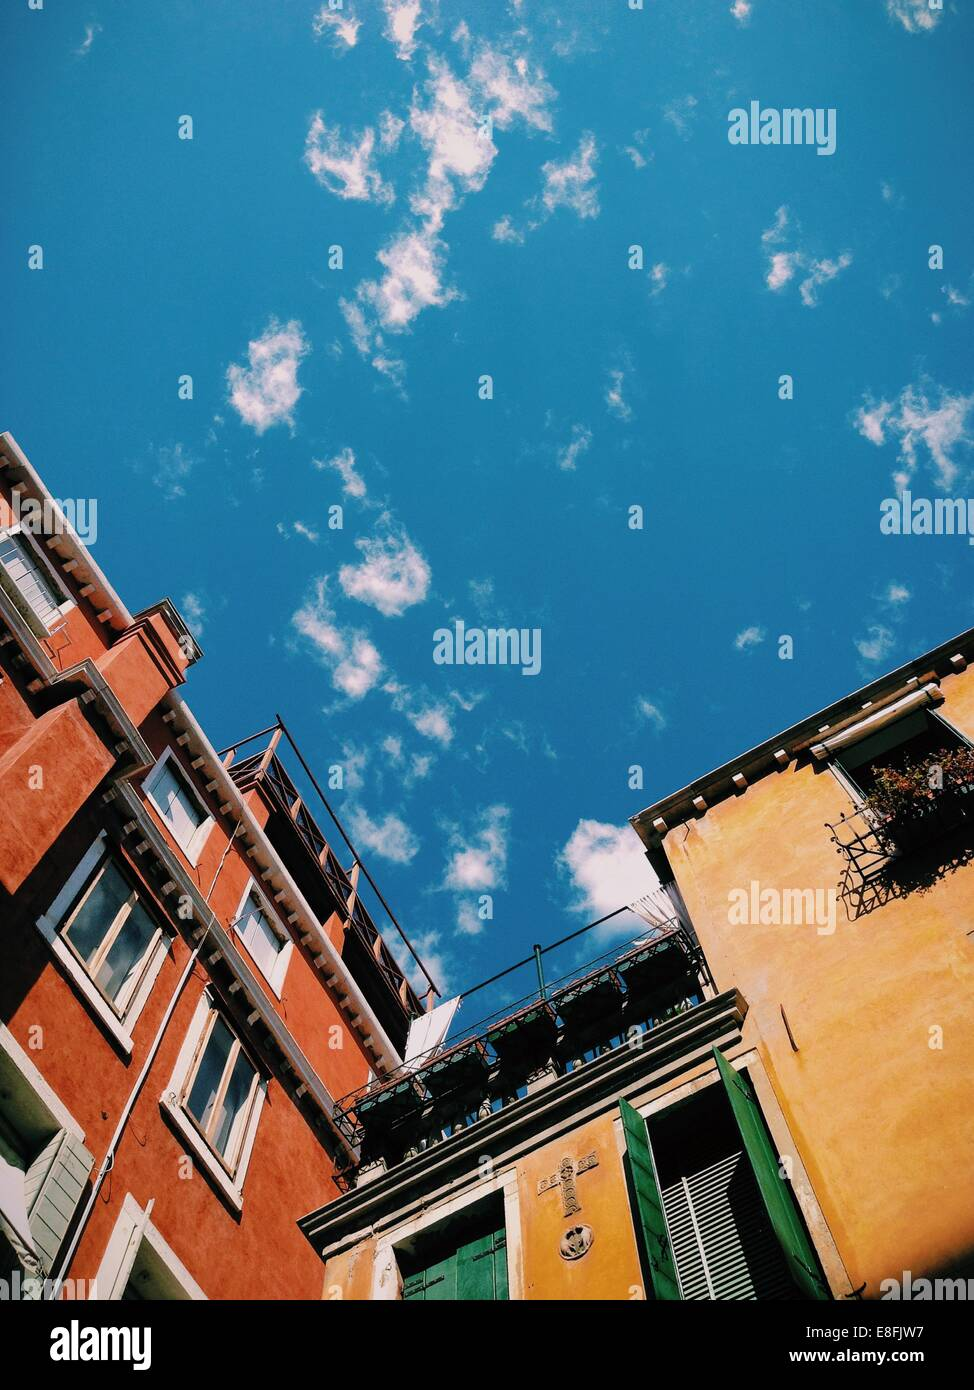 Italy, Venice, Sky over buildings - Stock Image